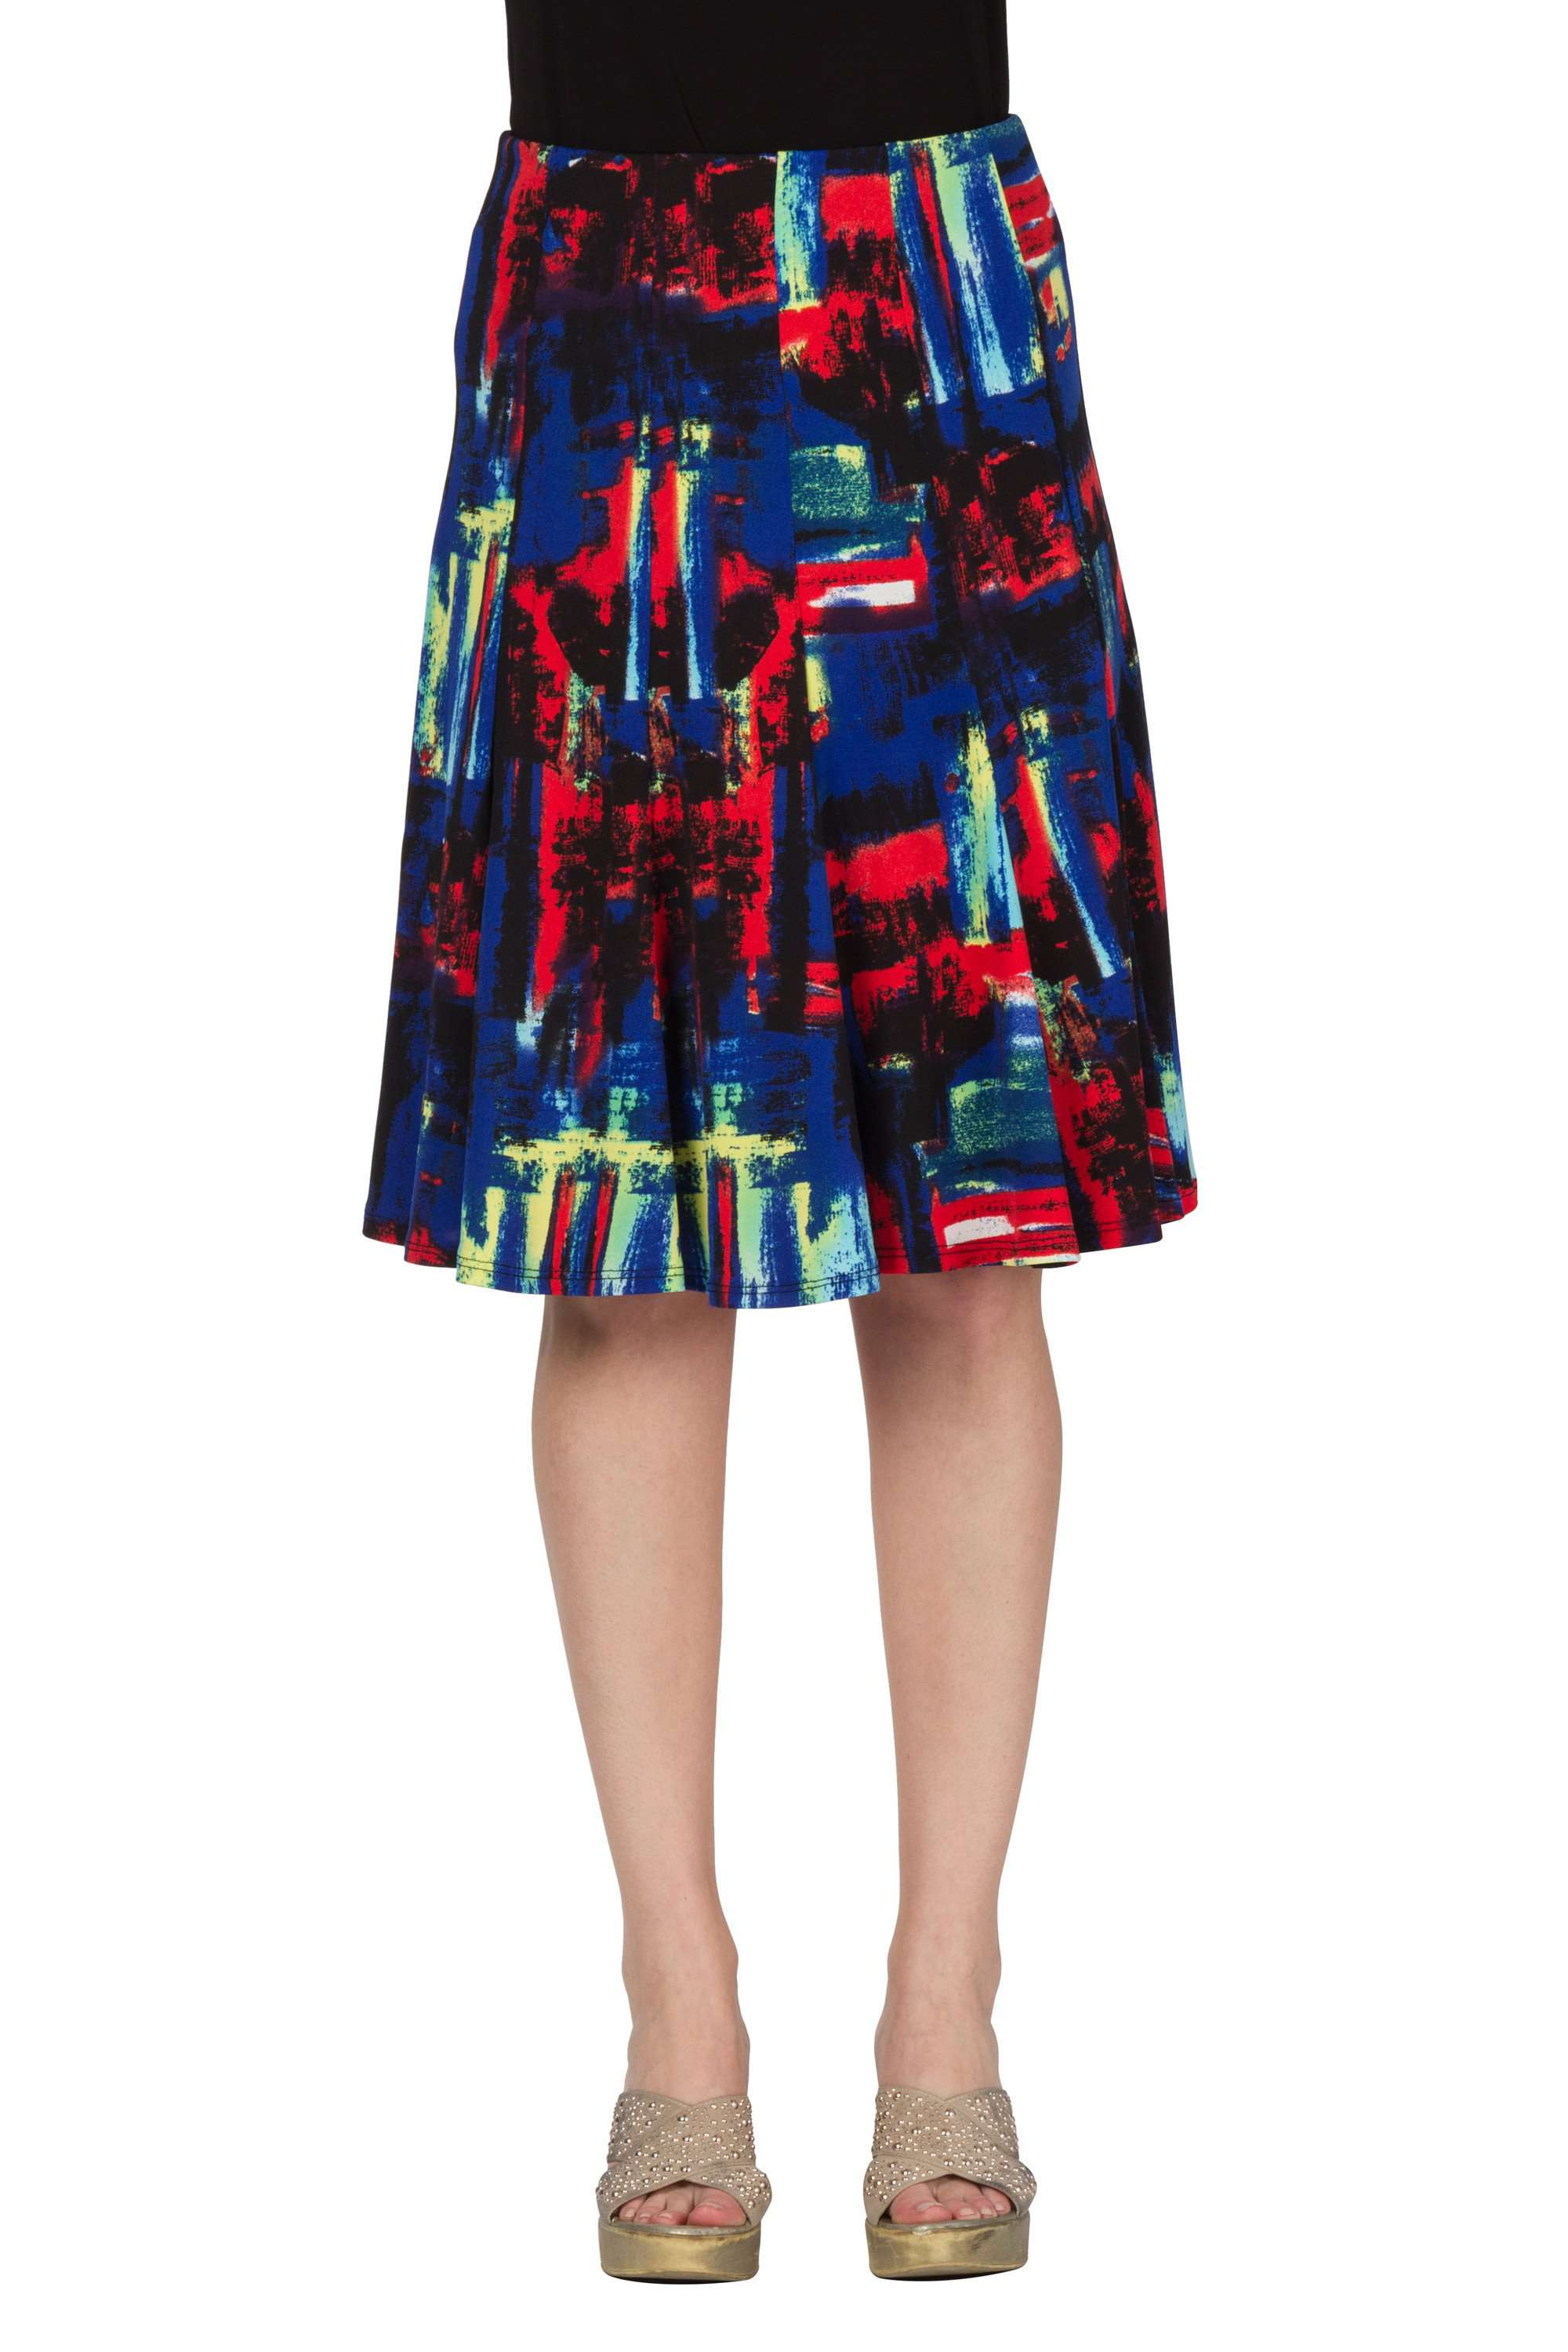 Skirt Super Colours Black Red and Royal - Yvonne Marie